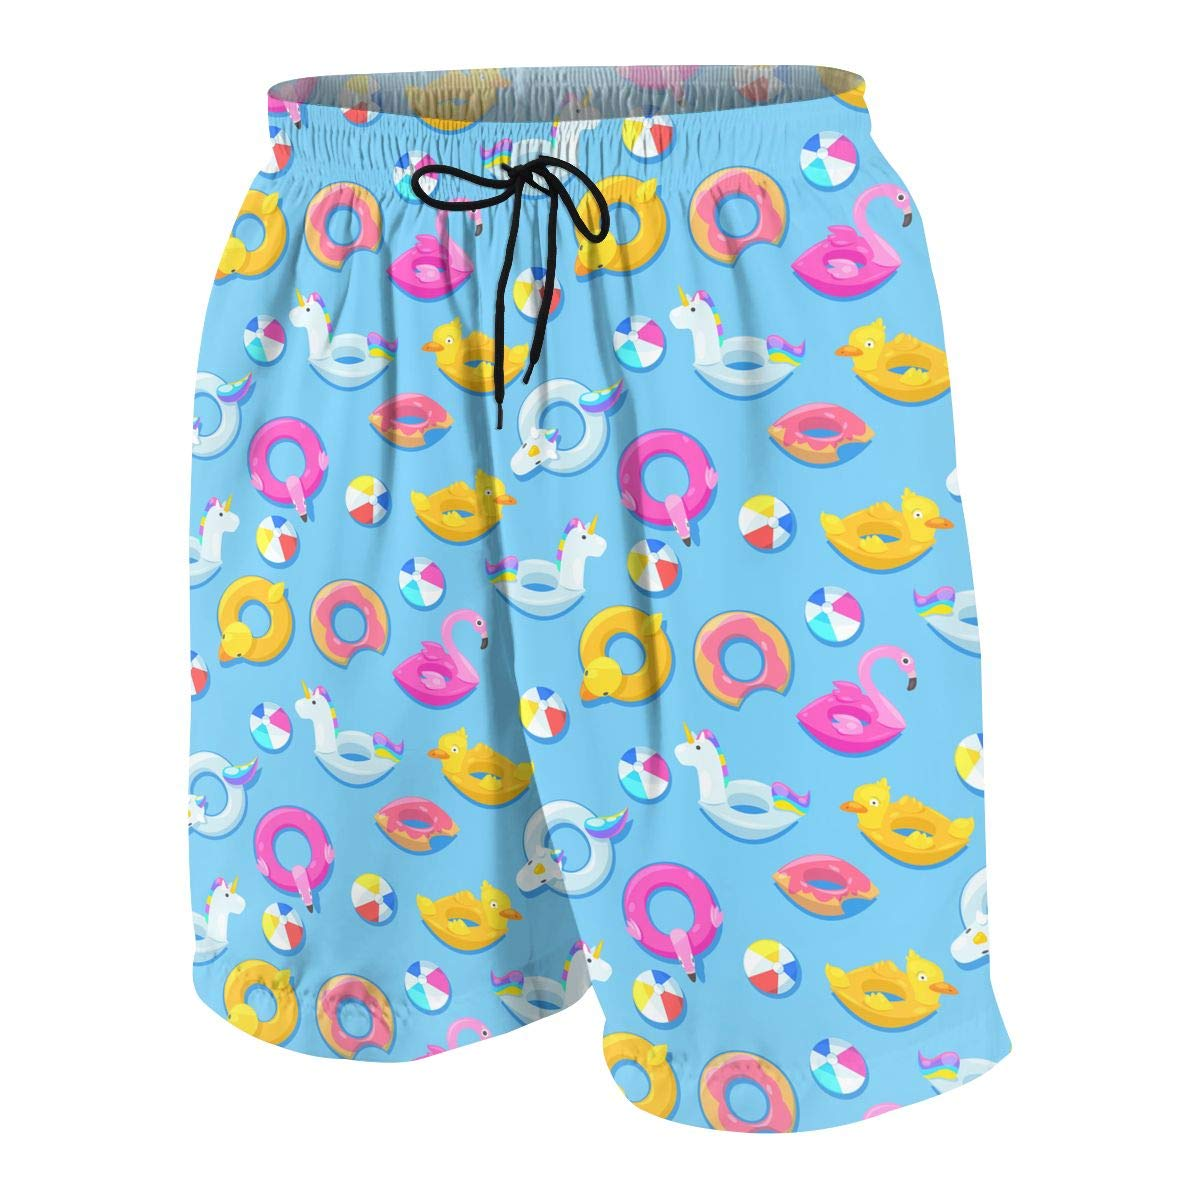 GI80@KU Teen 3D Printed Beach Shorts Polyester Summer Textile Design Pattern Swimsuit with Pockets